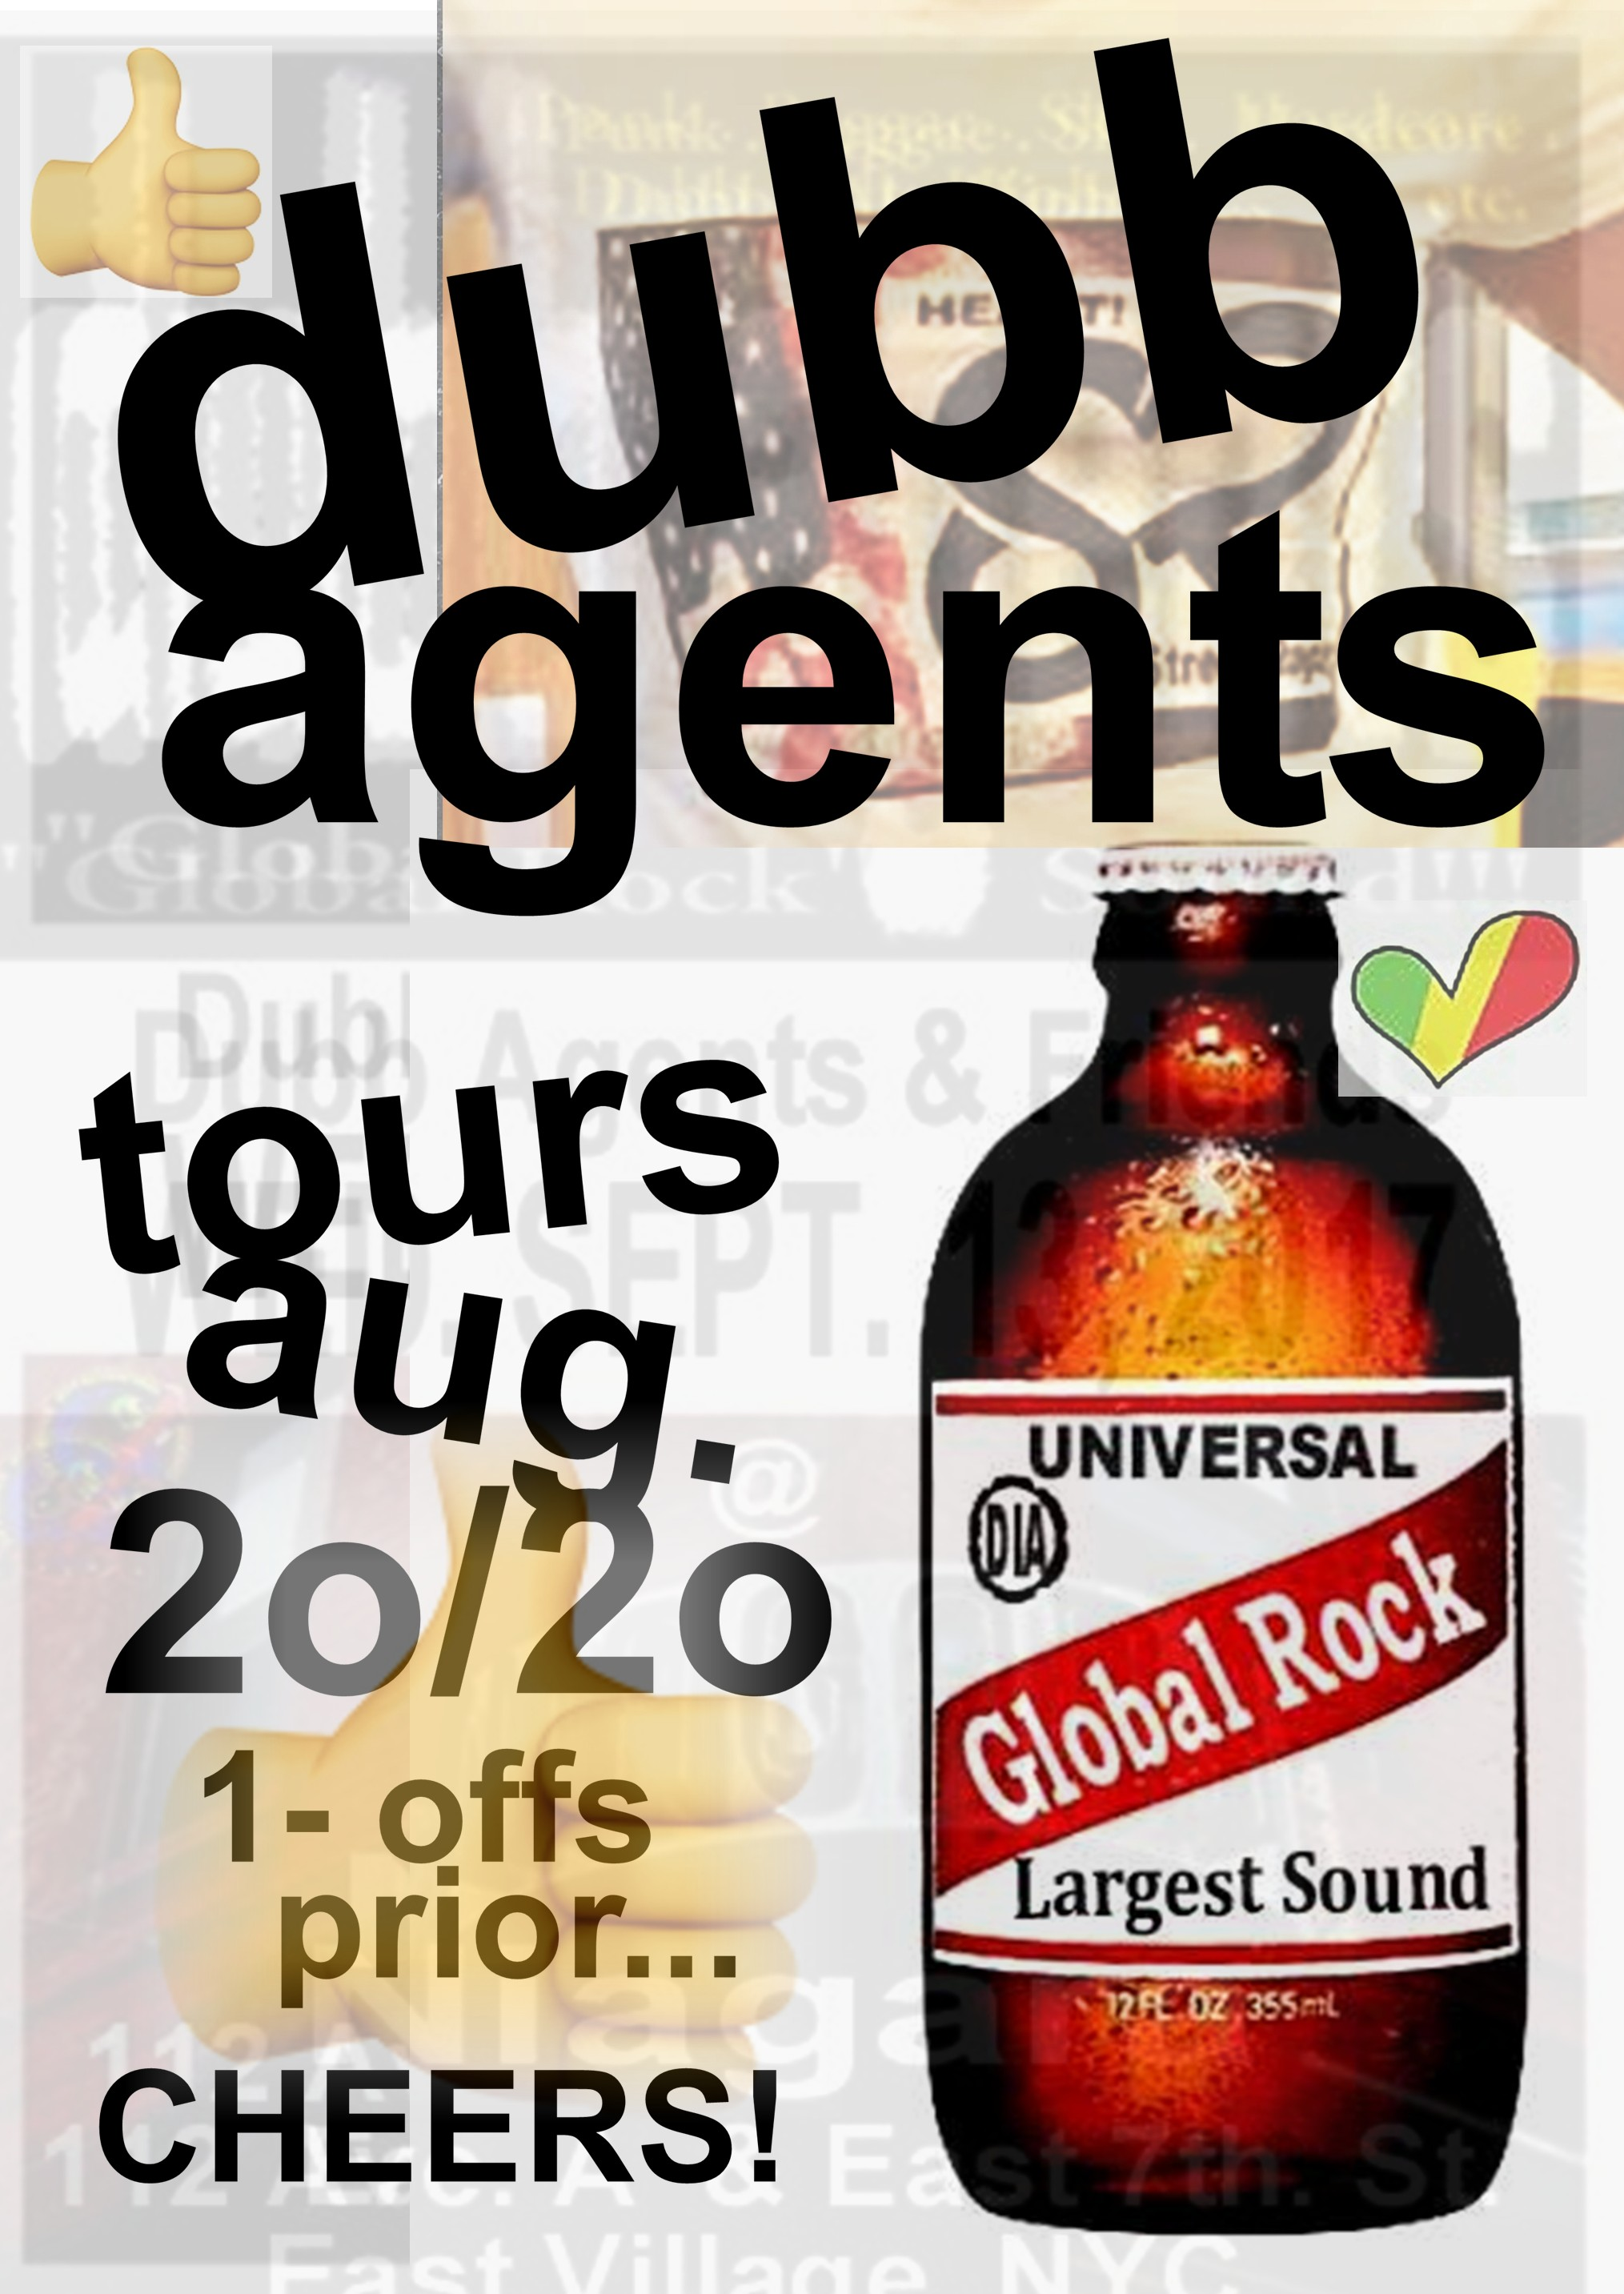 Dubb Agents  2020 Ubiquitous tour. D.I.A Production.